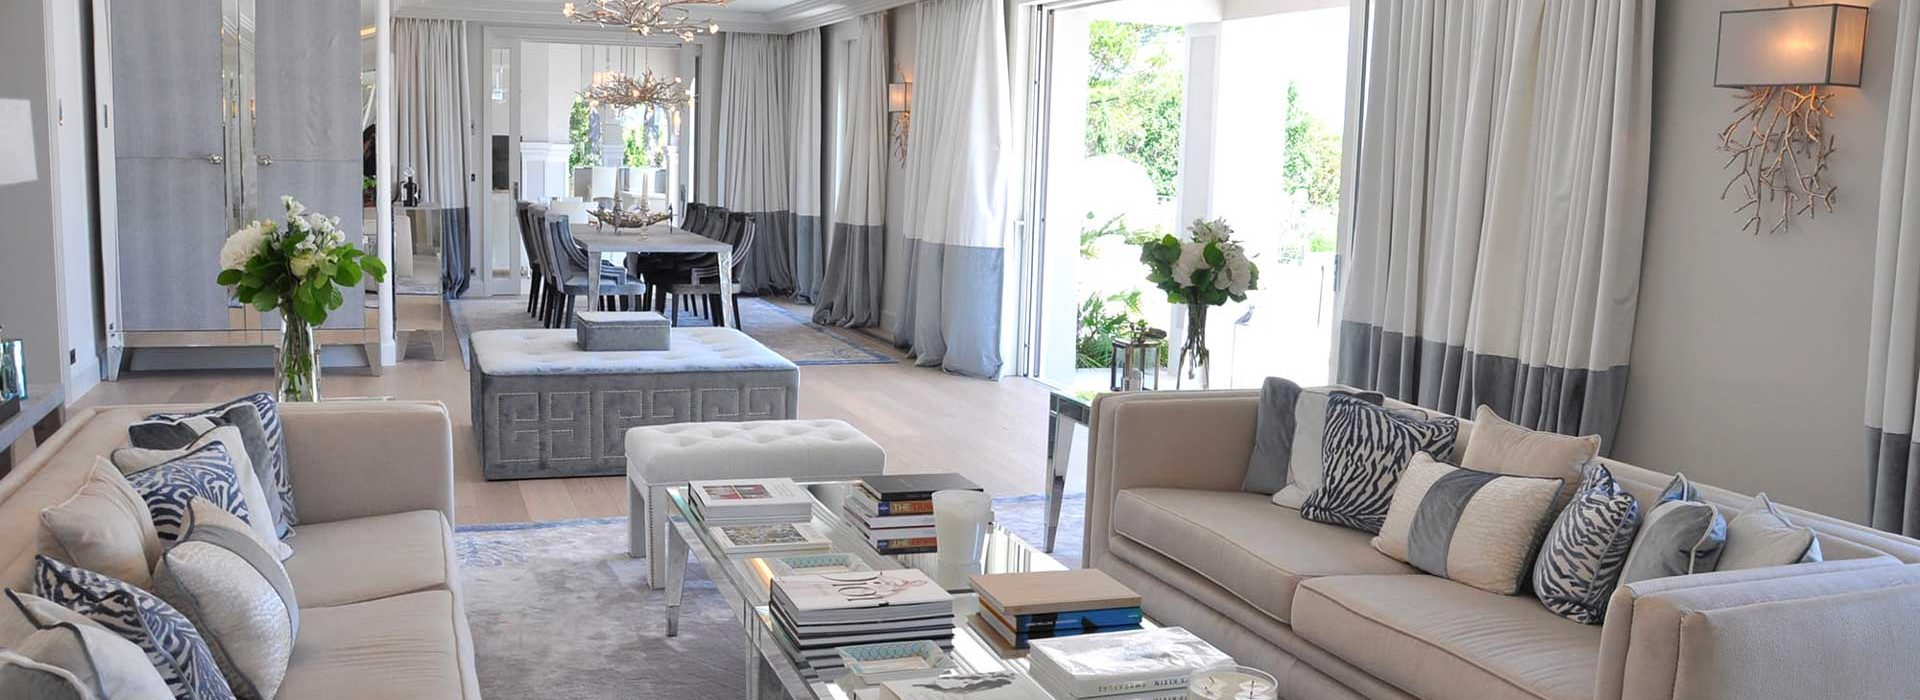 SUMMER-HOUSE-FRENCH-RIVIERA-01-Dome-interior-design-Geneve-Suisse